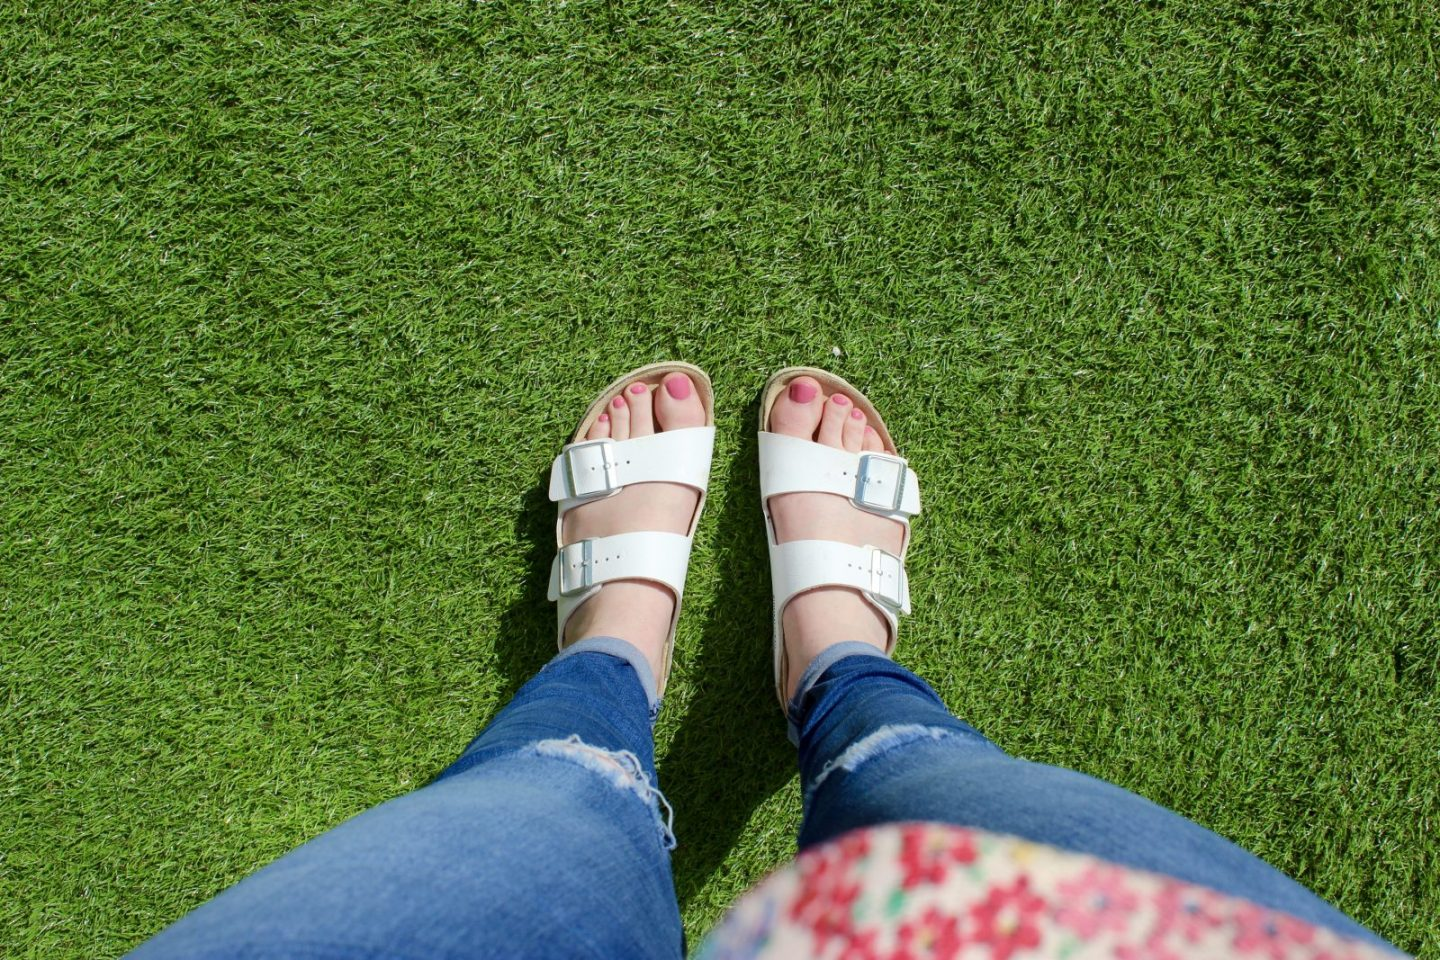 WHY WE CHOSE ARTIFICIAL GRASS FOR OUR GARDEN